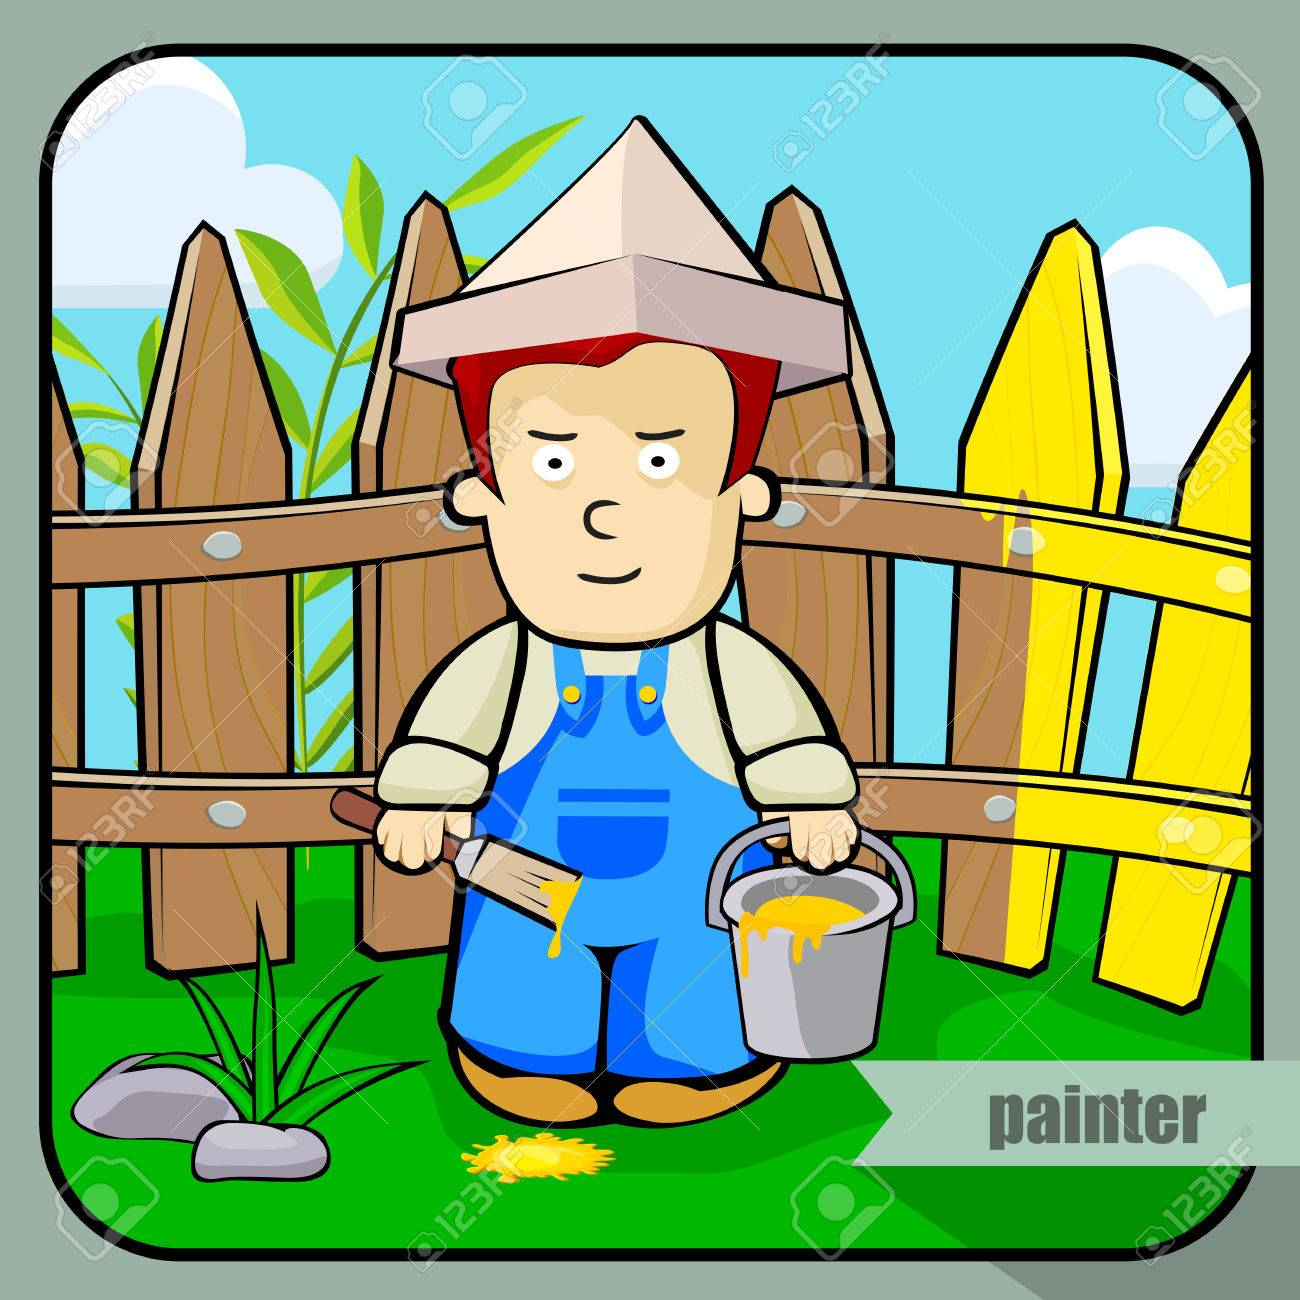 vector person character portrait painter portrait isolated on rh 123rf com Bird Vector Picket Fence Vector